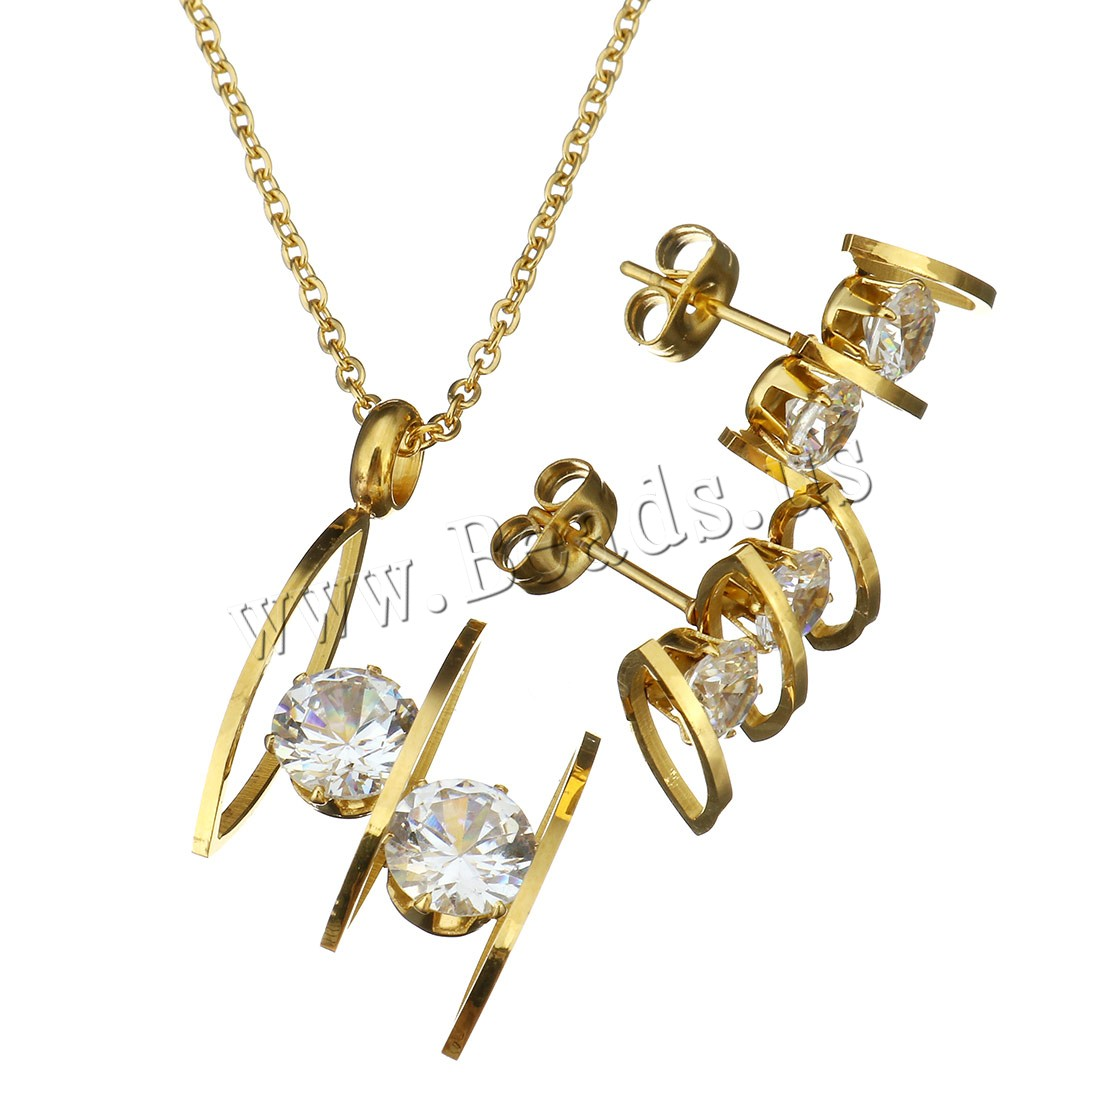 Buy Crystal Jewelry Sets earring & necklace Stainless Steel Crystal 2Inch extender chain gold color plated oval chain & woman 19x33mm 1.5mm 12x15mm Length:Approx 17 Inch 10Sets/Lot Sold Lot